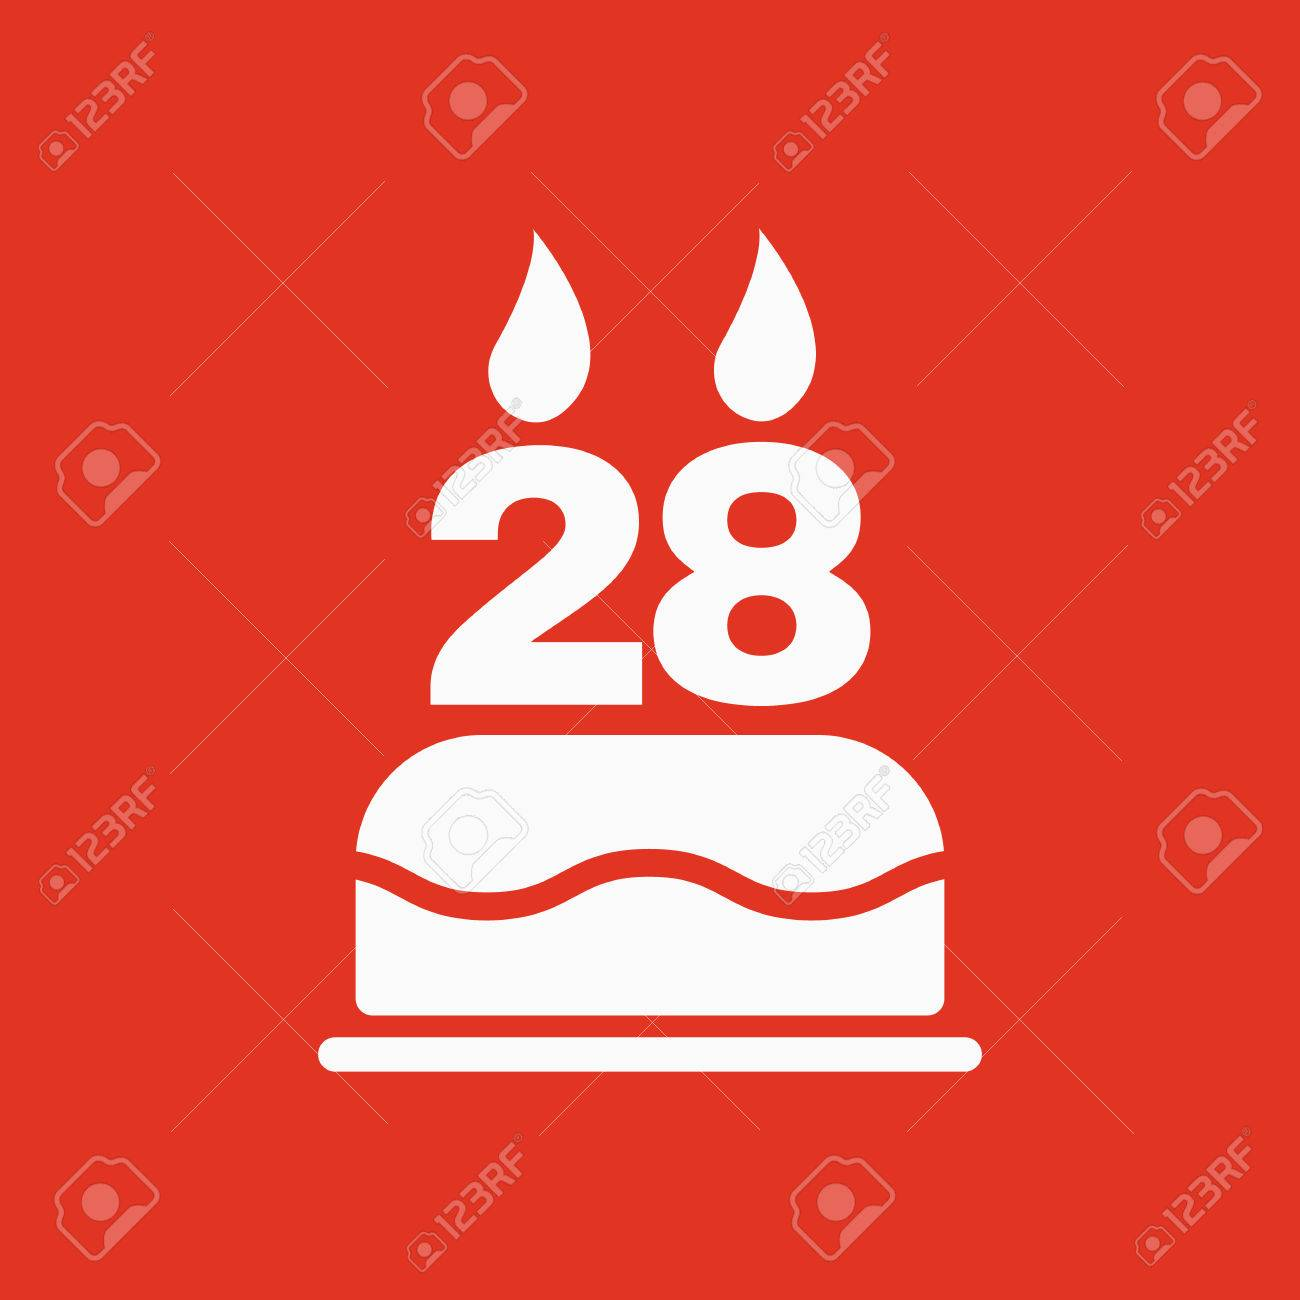 The Birthday Cake With Candles In The Form Of Number 28 Icon